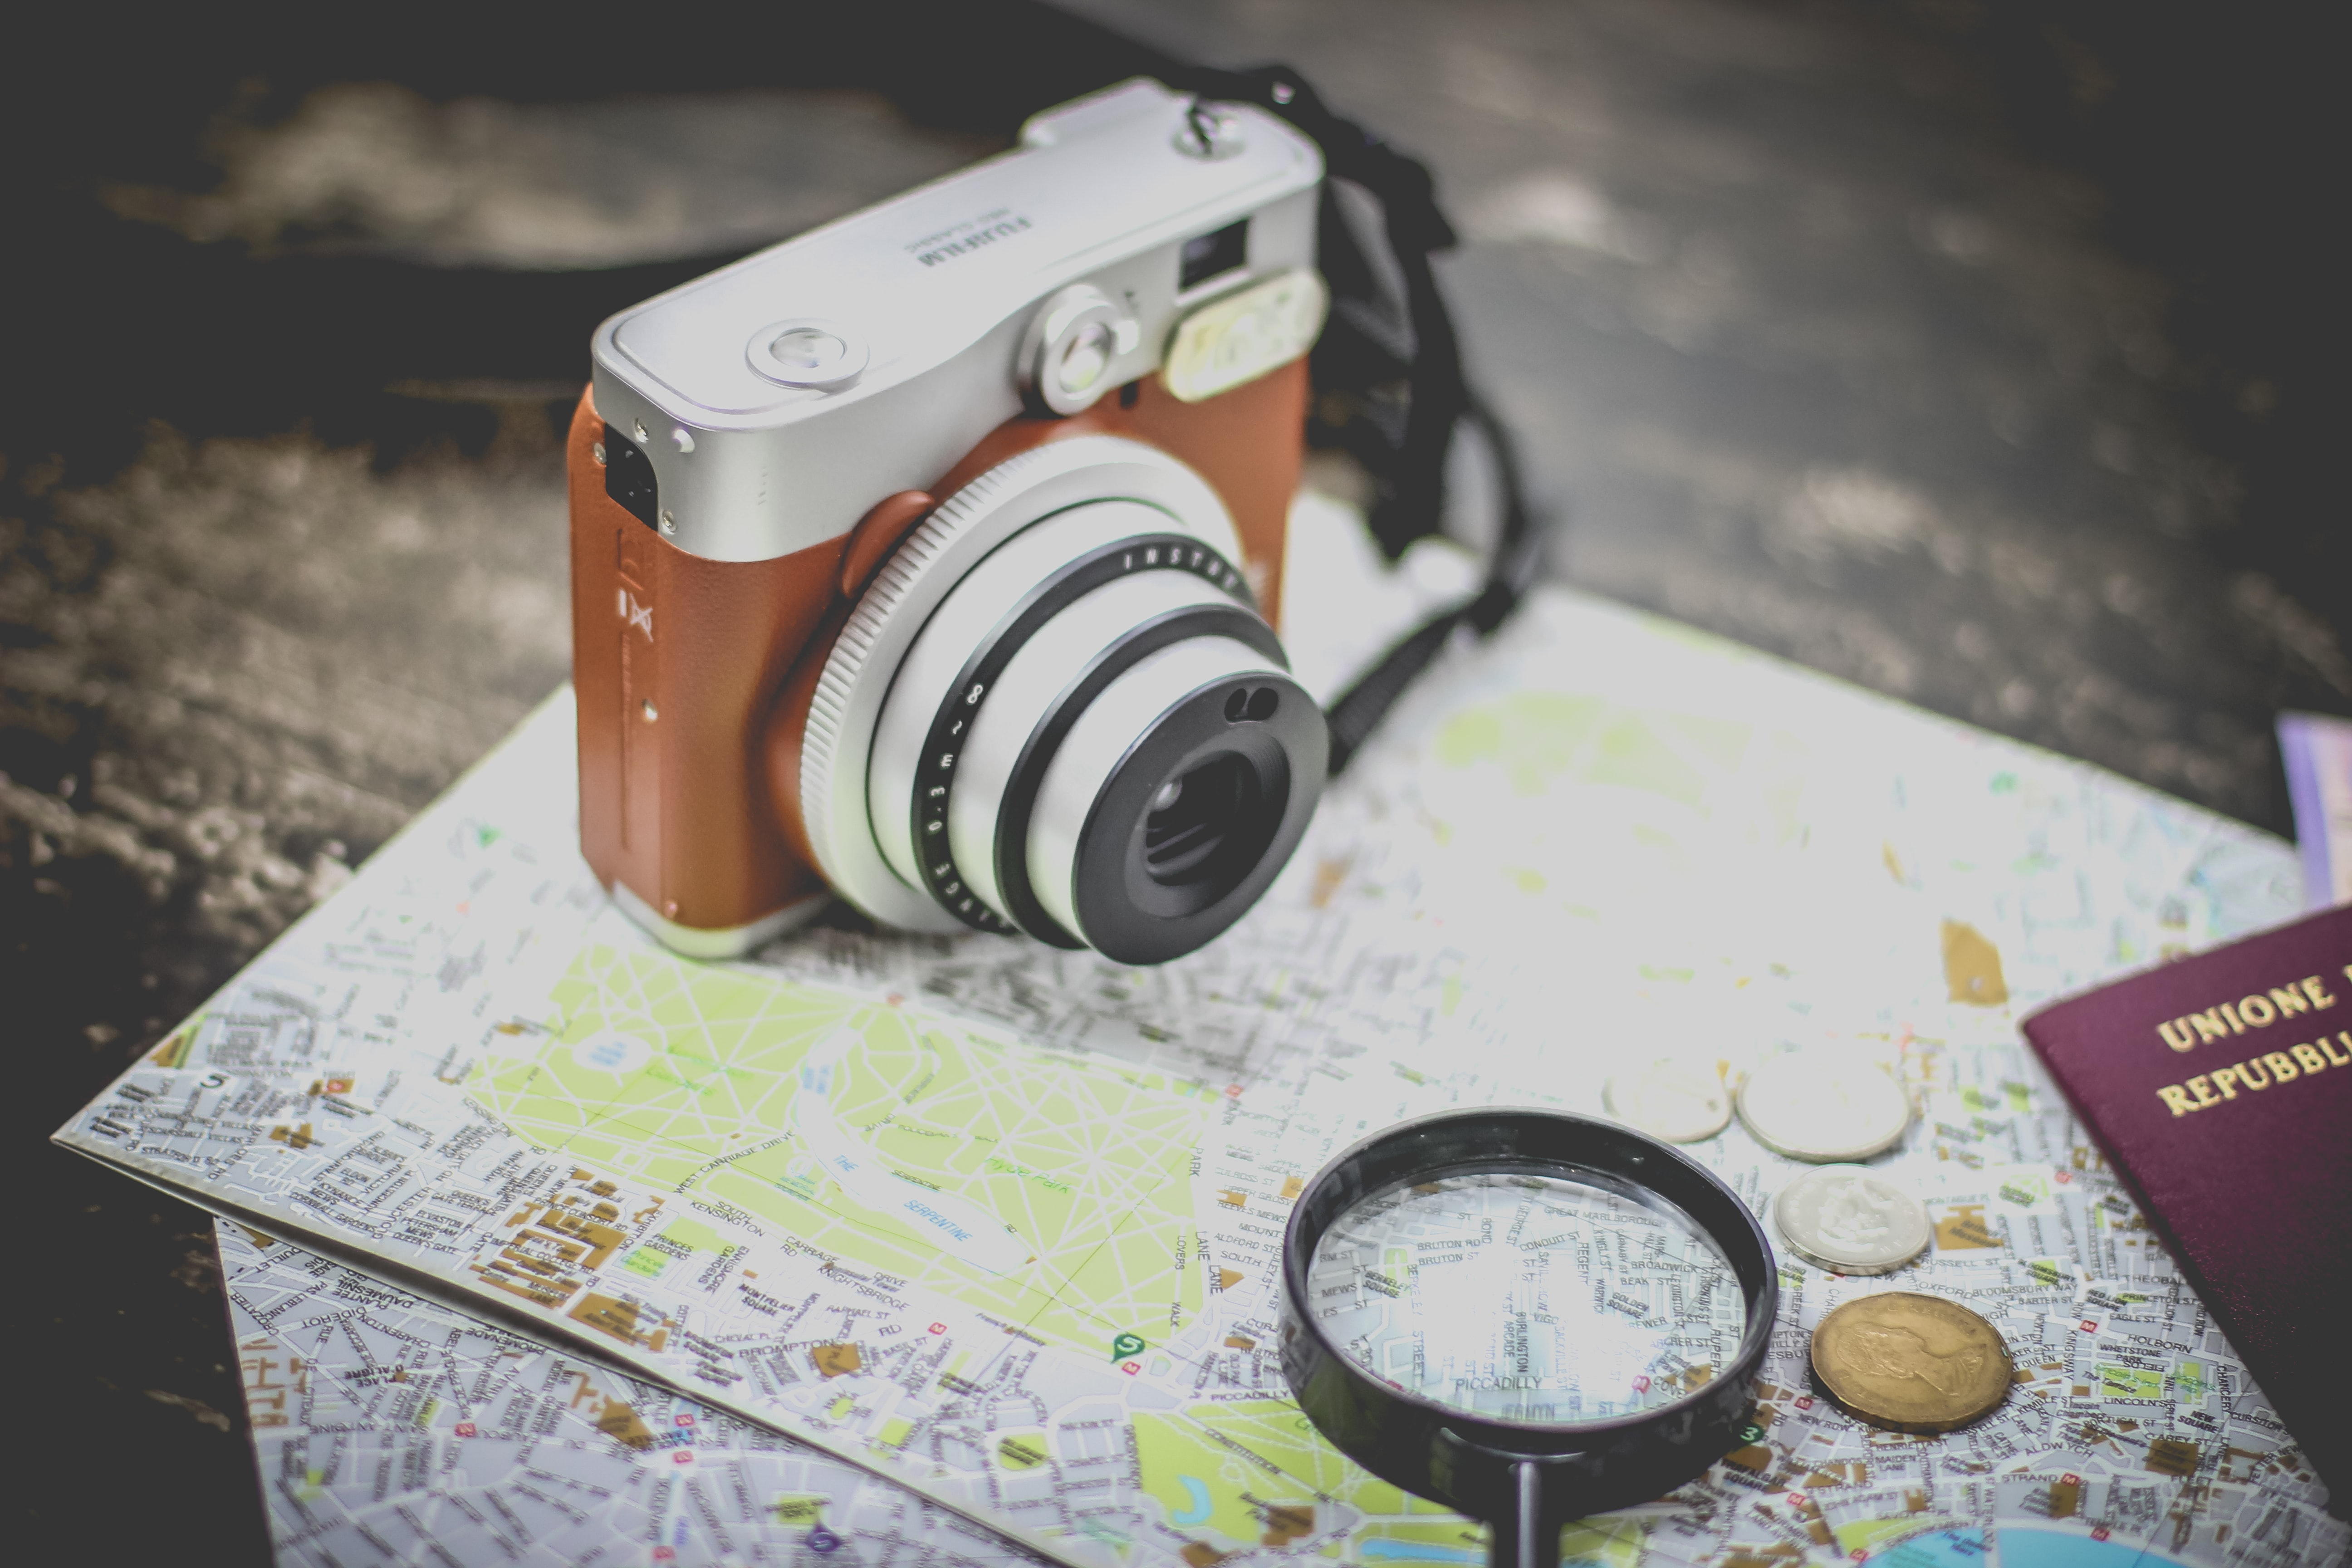 silver point-and-shoot camera on geographical map